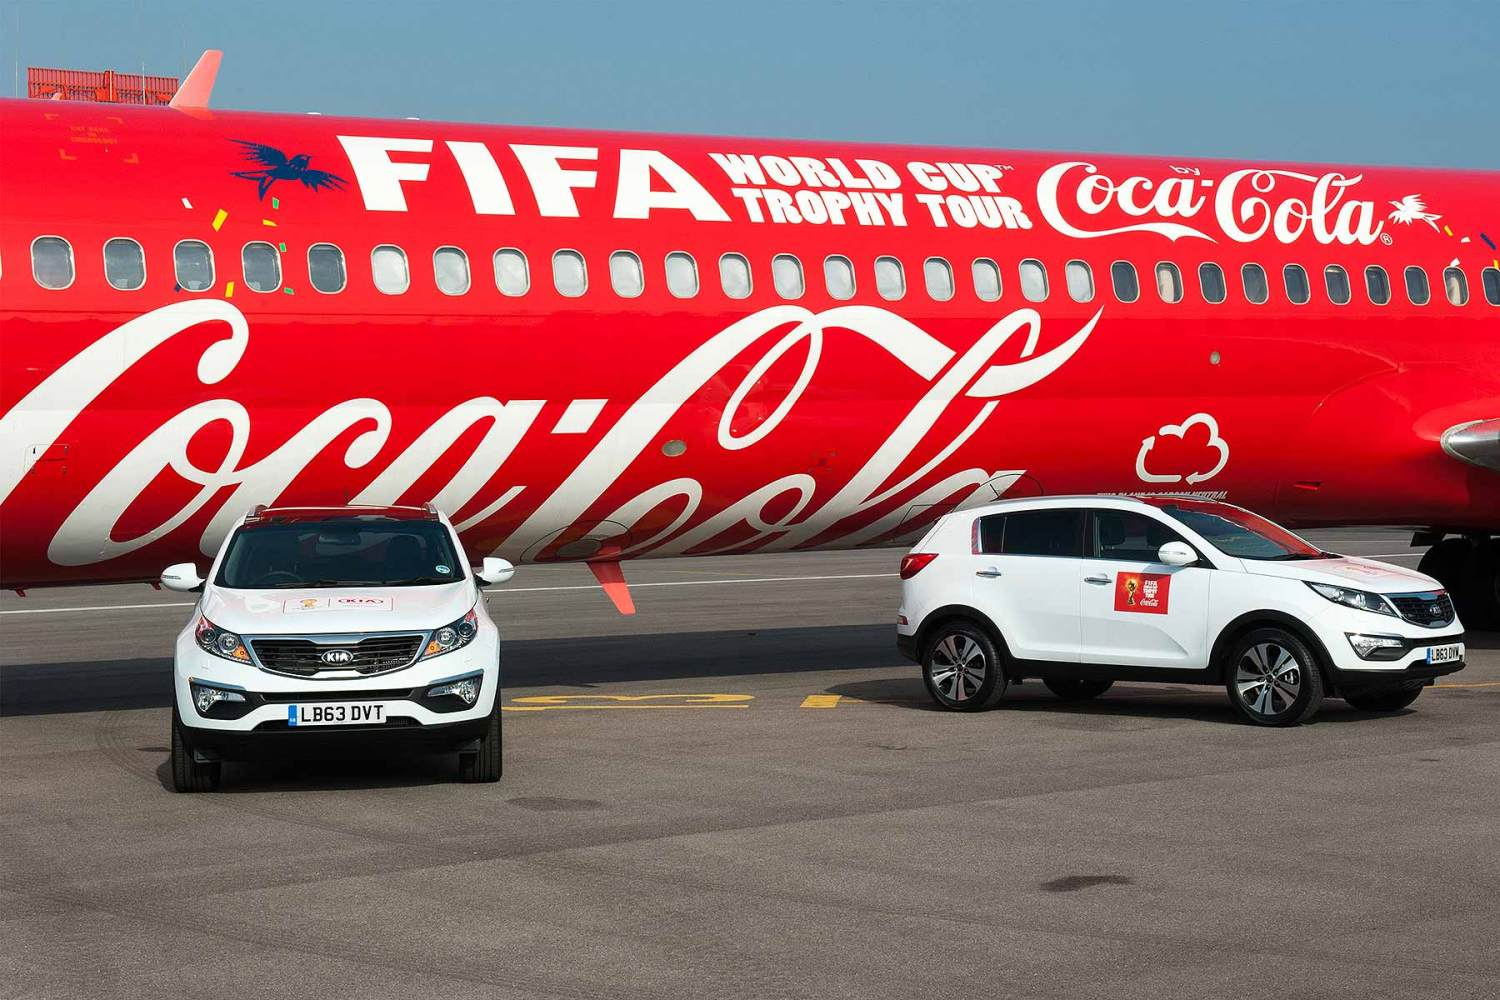 Hyundai Kia FIFA World Cup